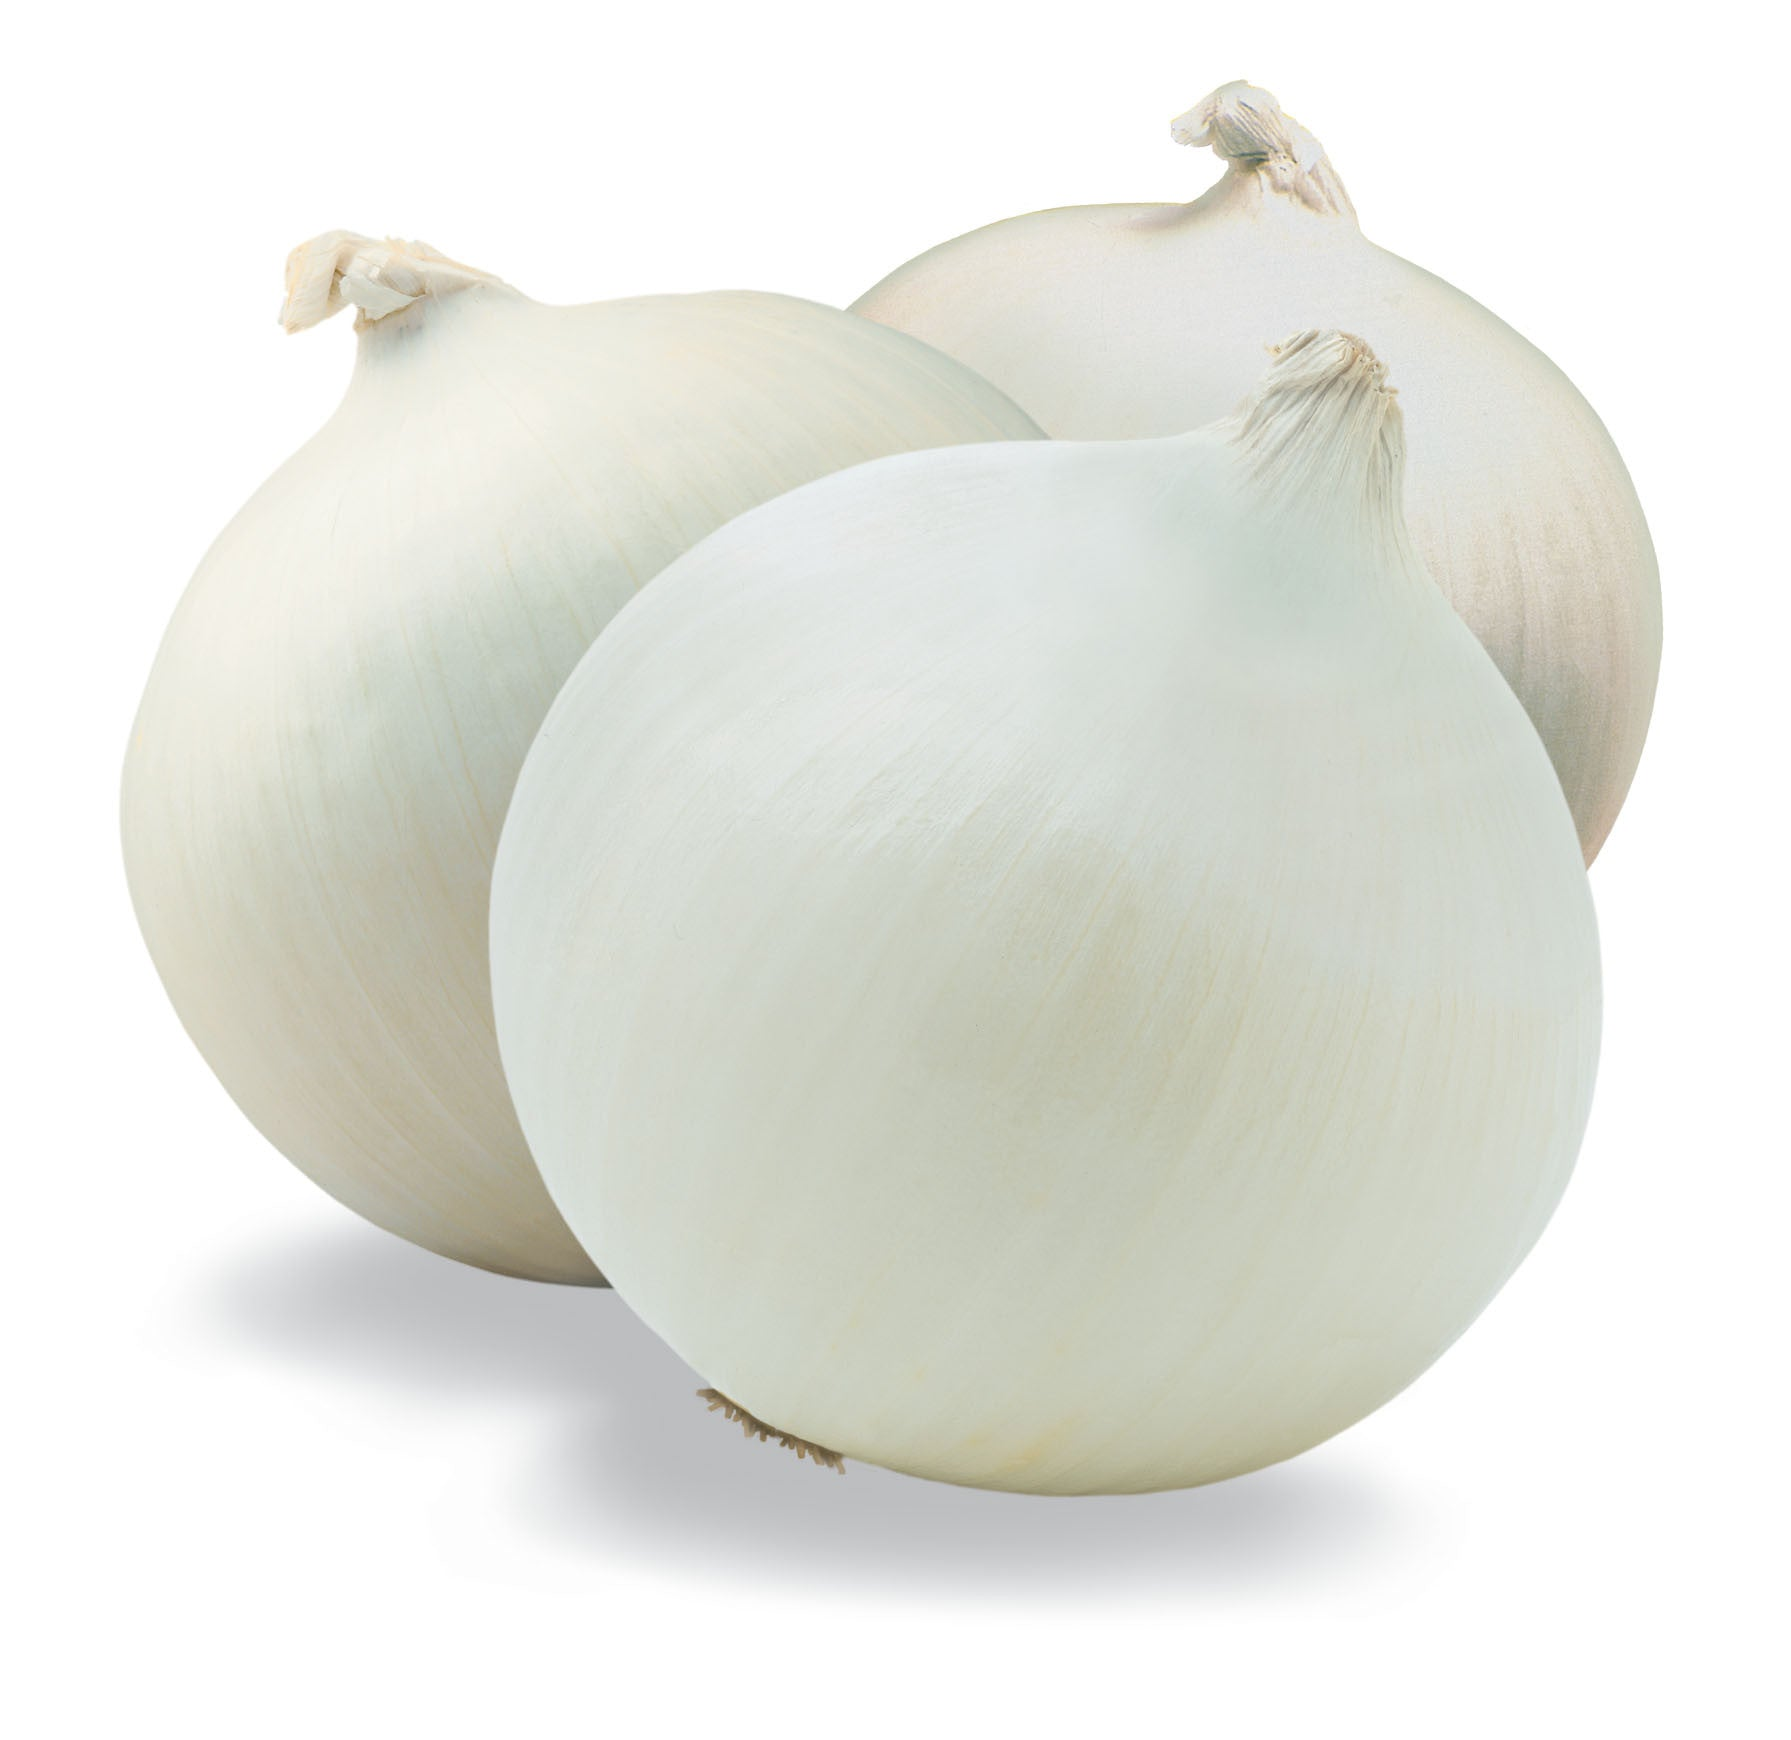 Crystal White Wax Pickling Onion - Heirloom Vegetable - 50 Seeds